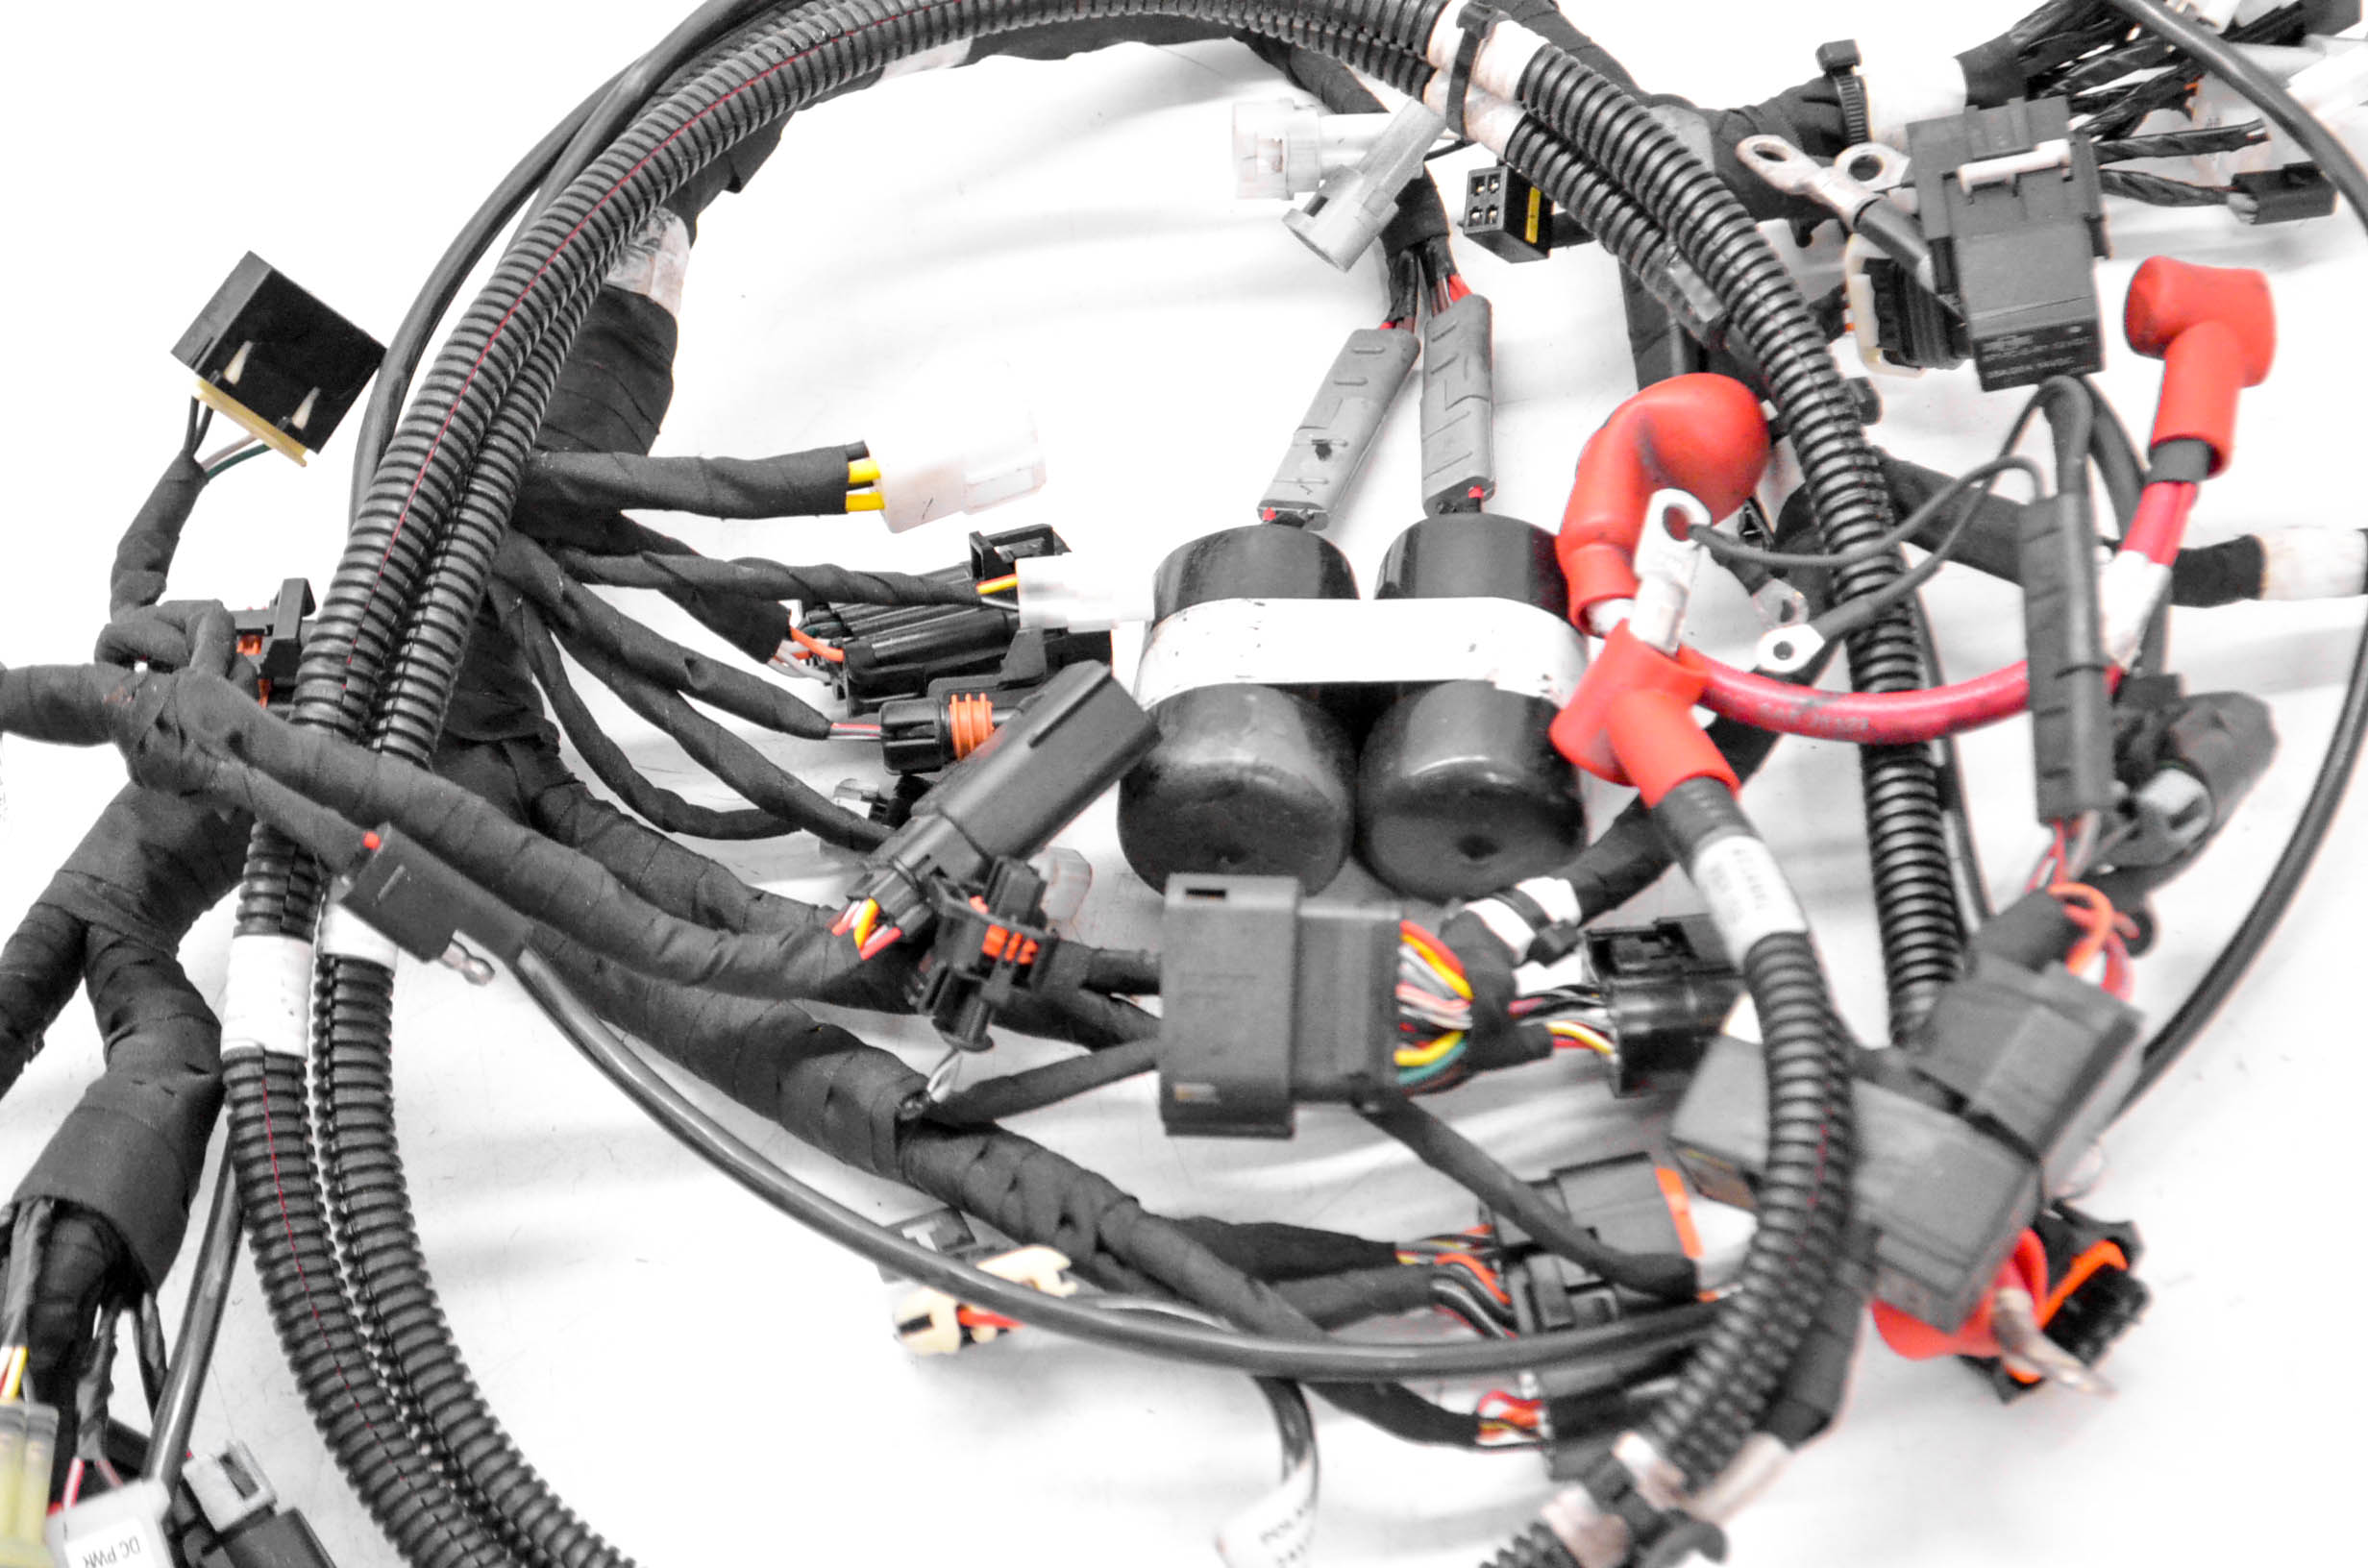 17 Polaris Switchback 600 Assault Wire Harness Electrical Wiring